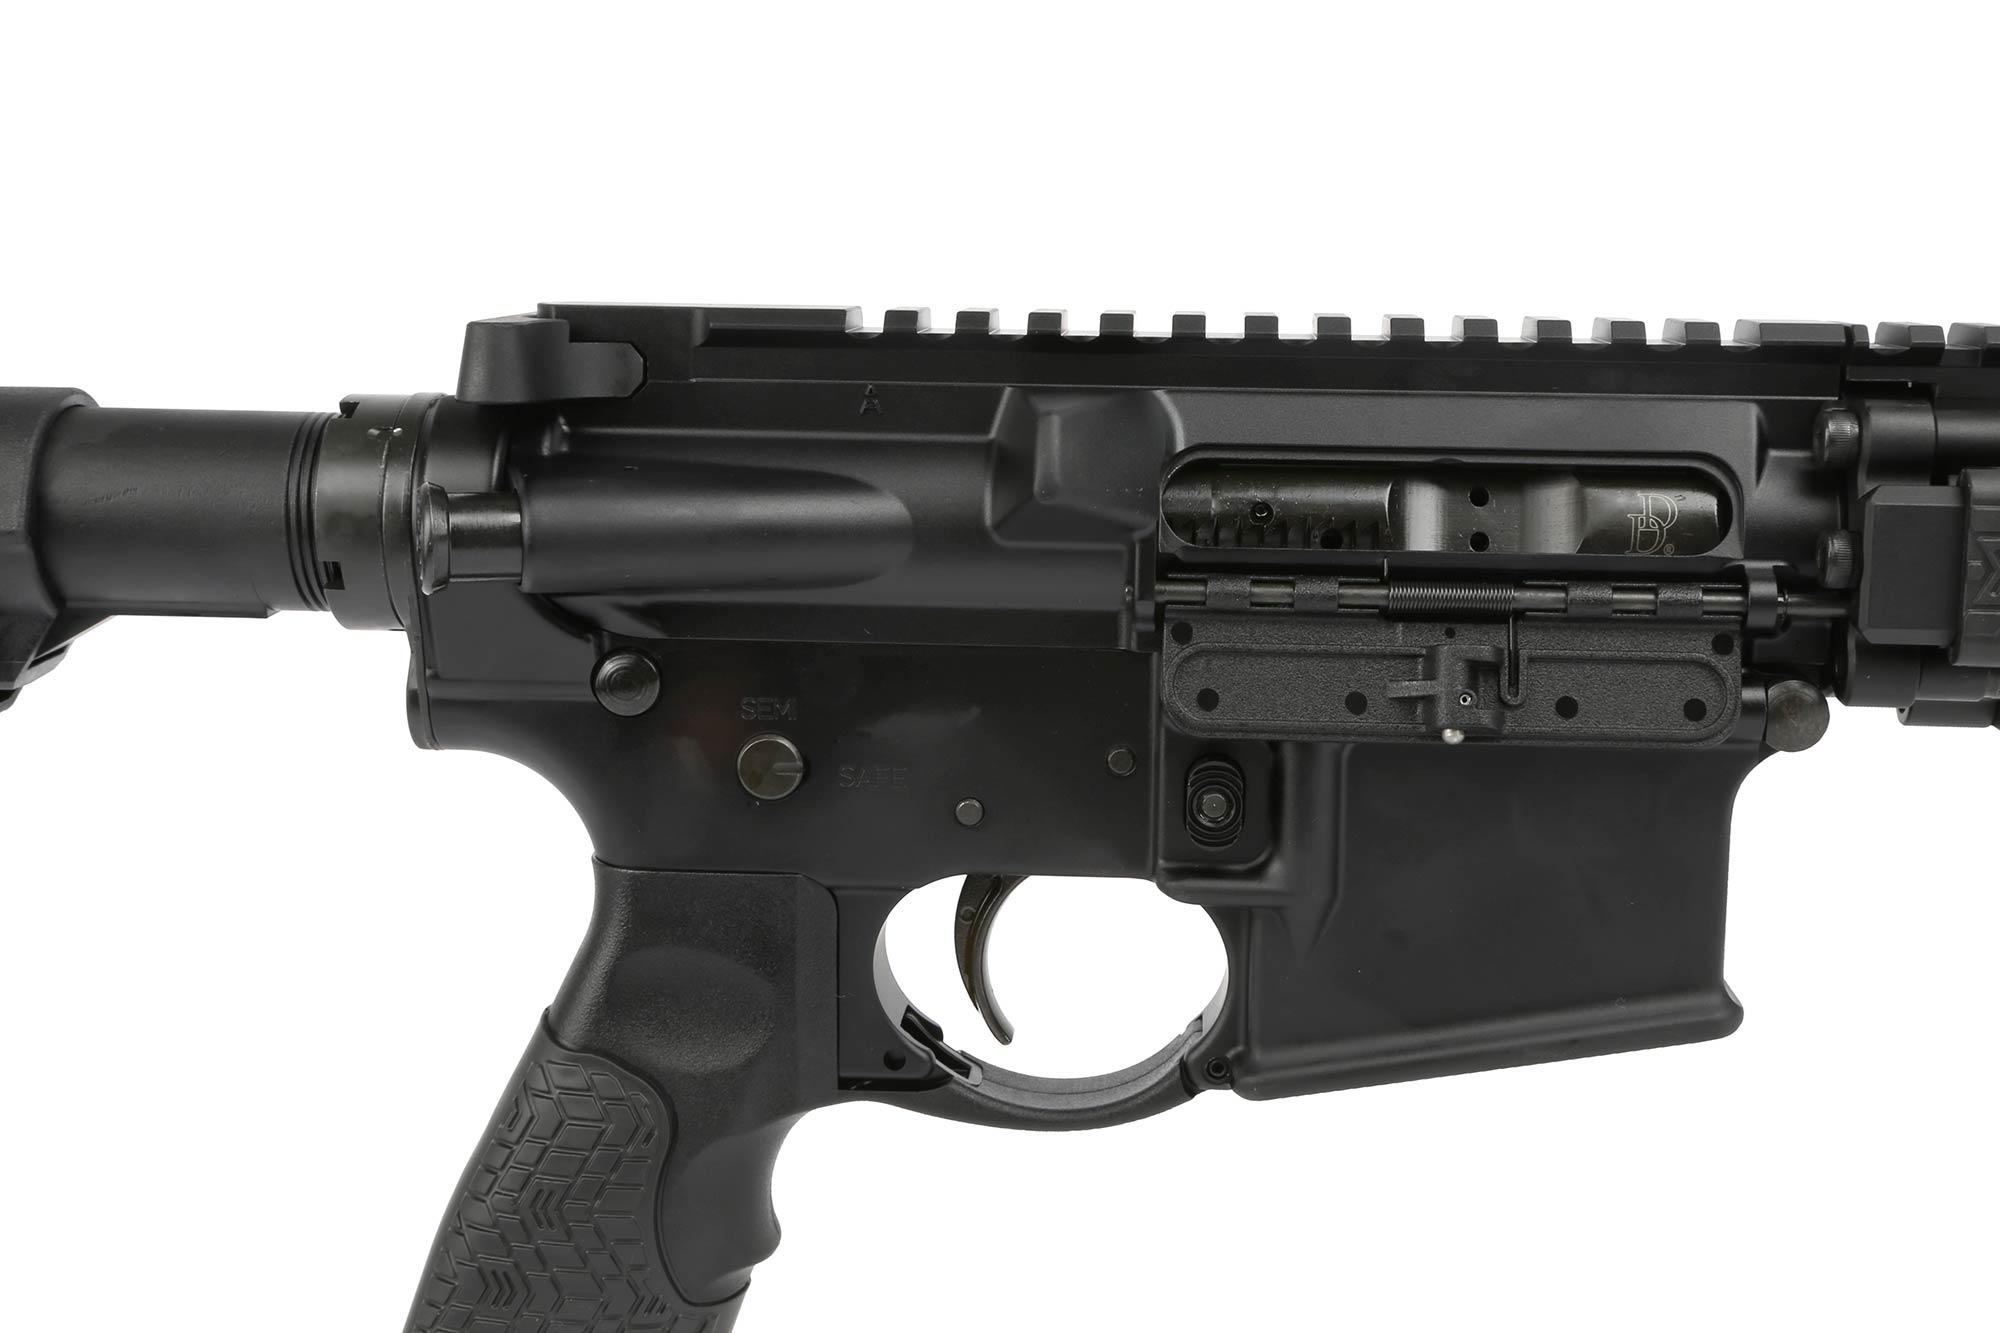 The Daniel Defense MK 18 AR15 features a staked castle nut